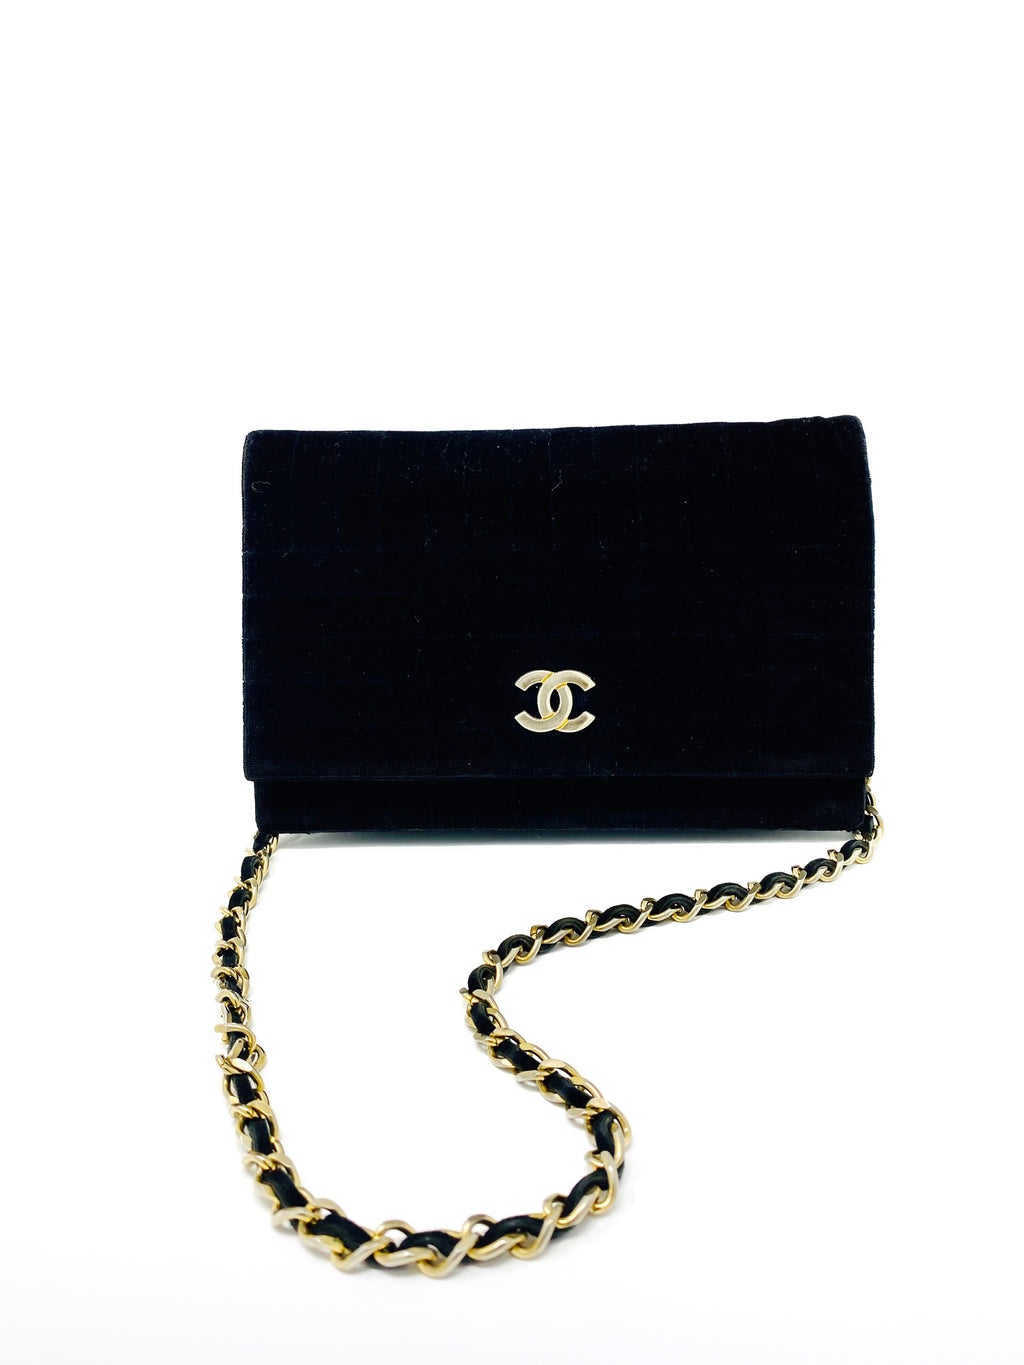 chanel black velvet bag with CC logo and chain.